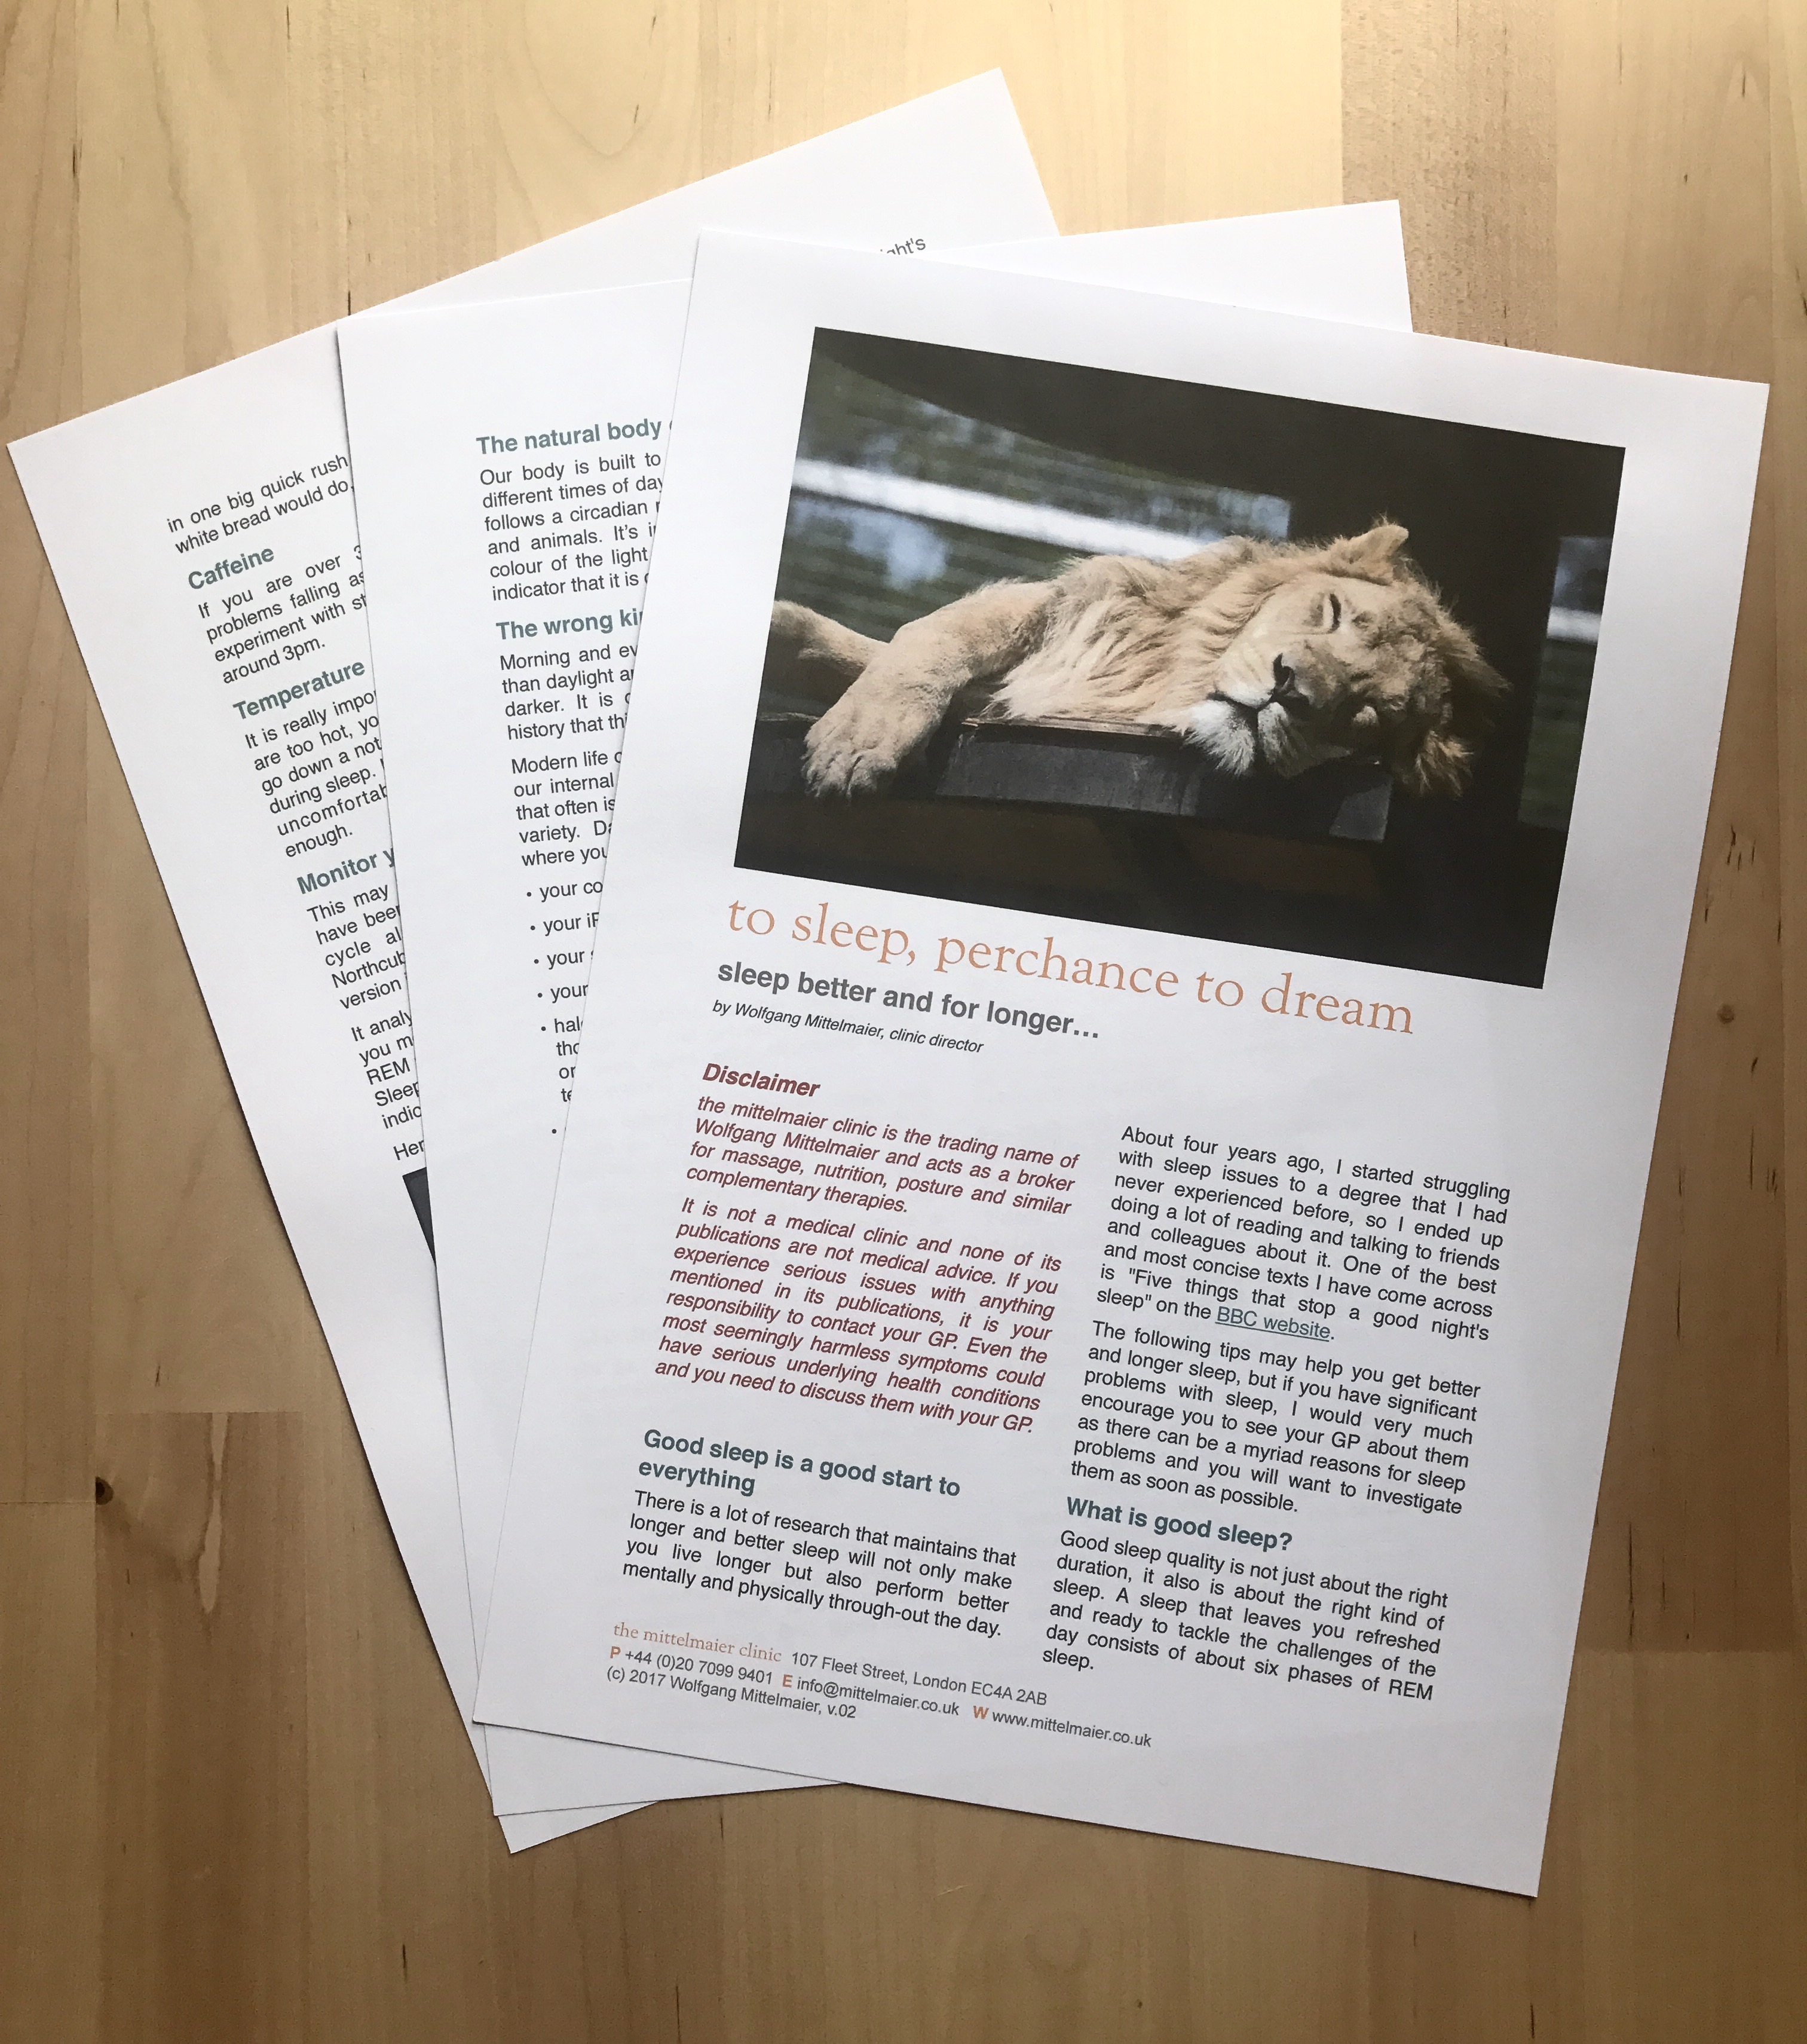 photo of printout of free sleep newsletter download